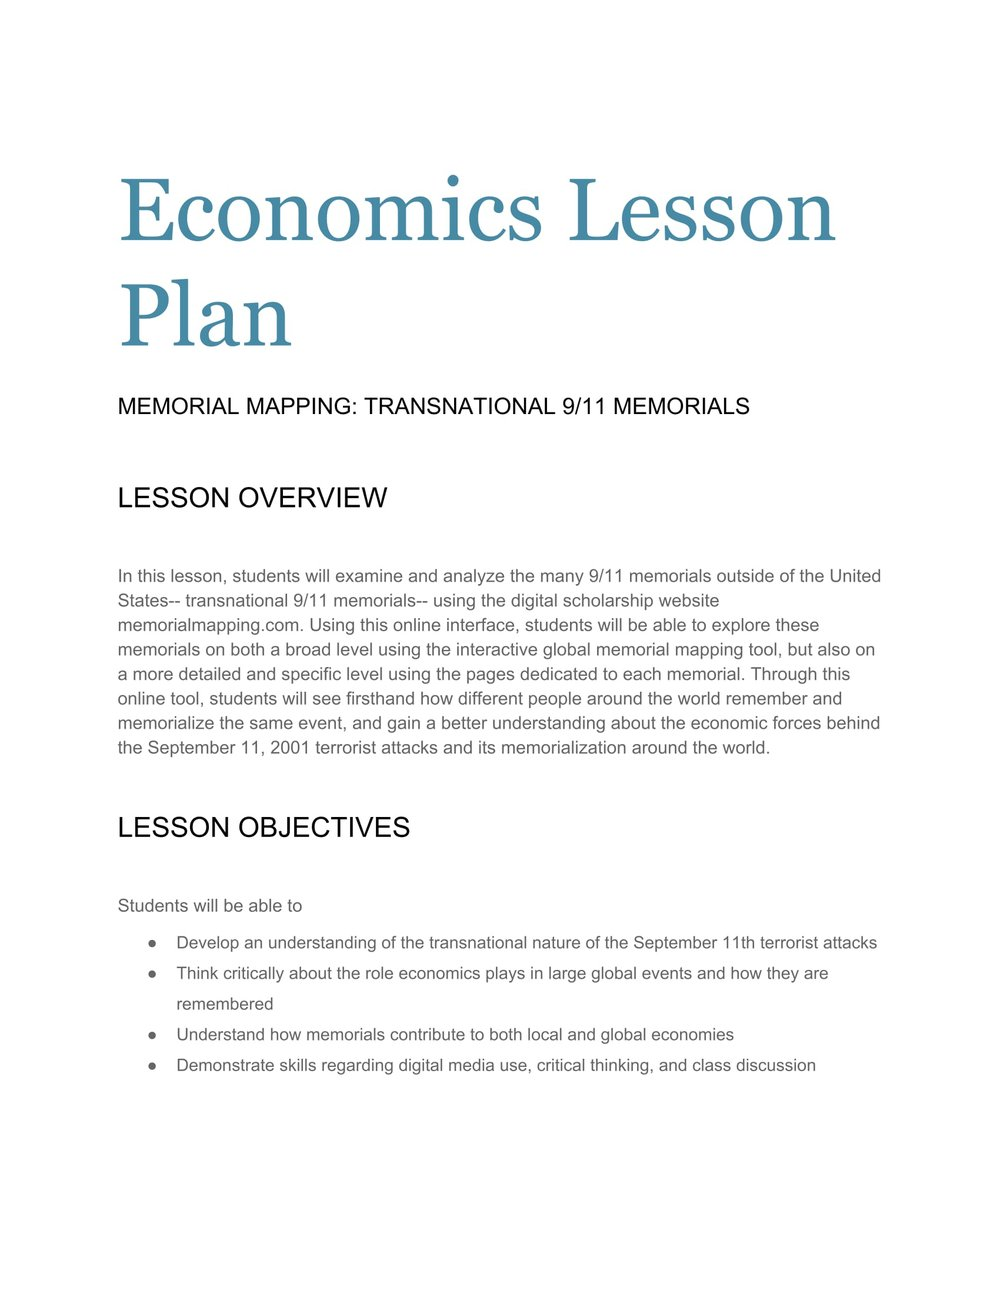 Economics Lesson Plan (1)-1.jpg